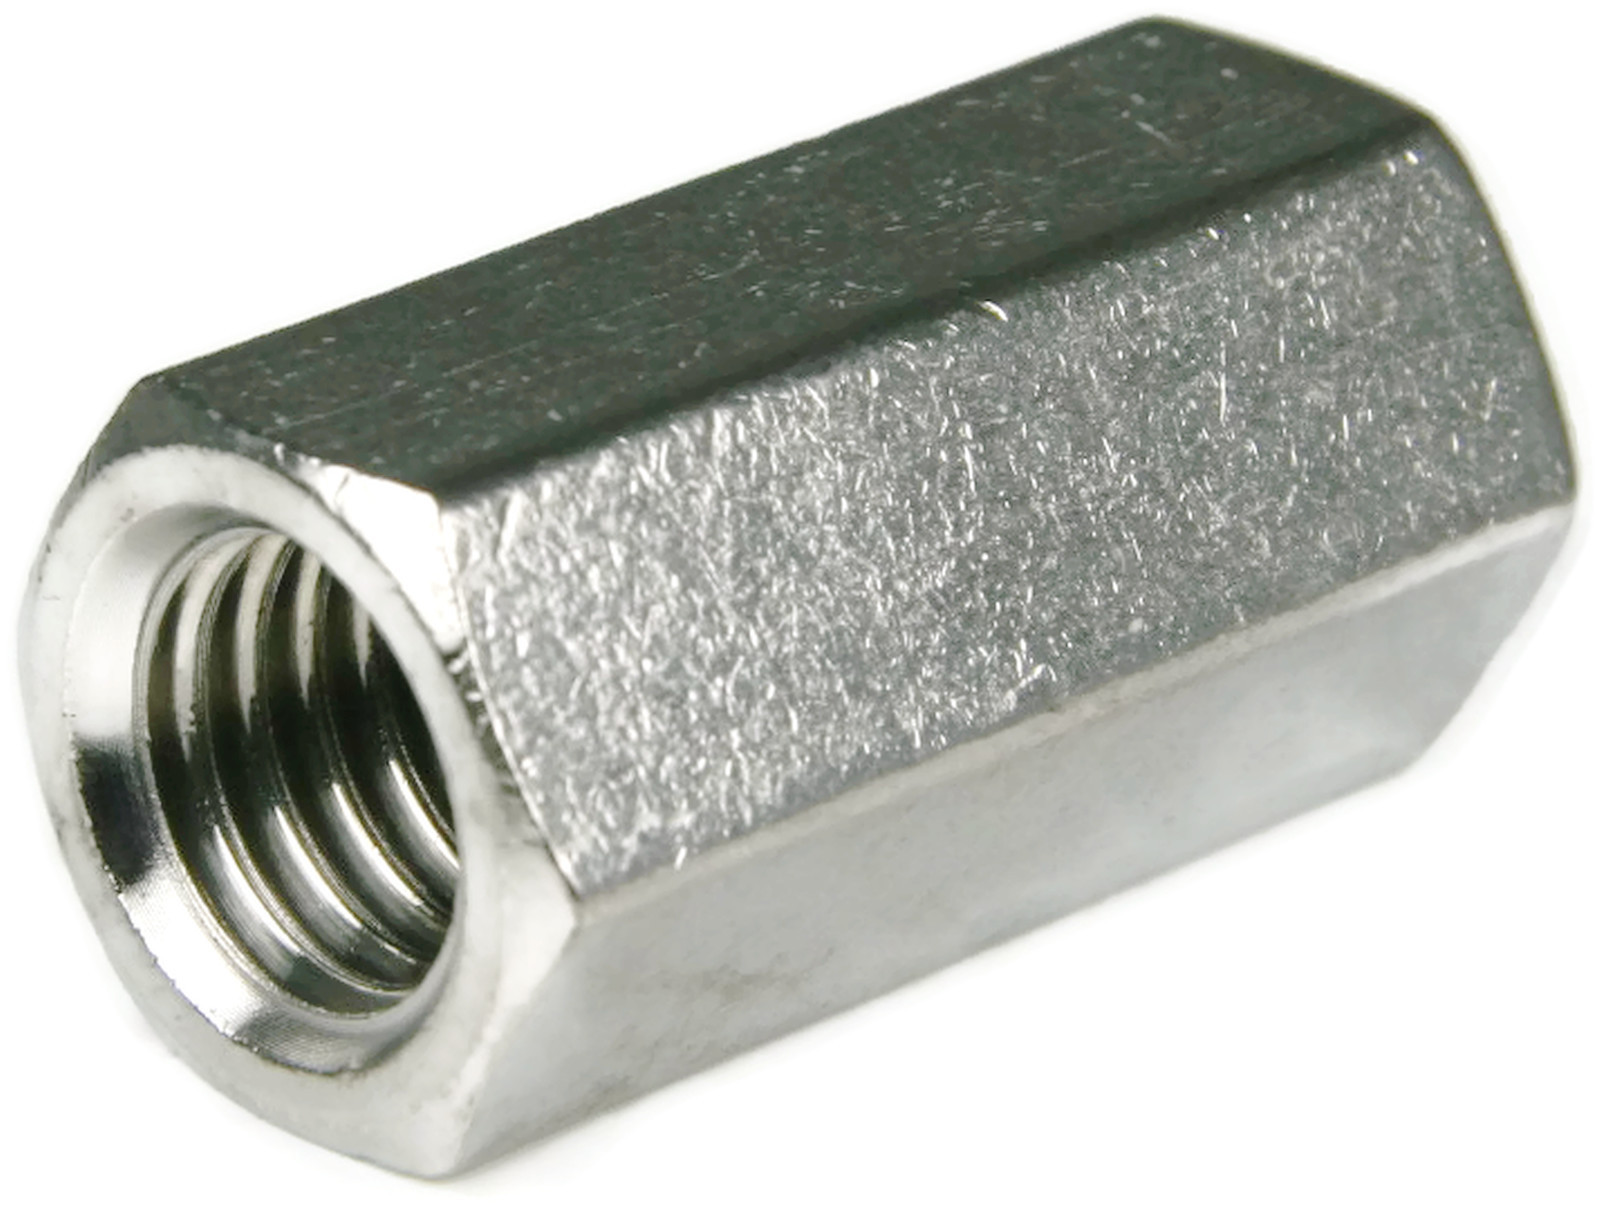 Stainless Steel Threaded Couplers : Stainless steel coupling nuts threaded rod unf